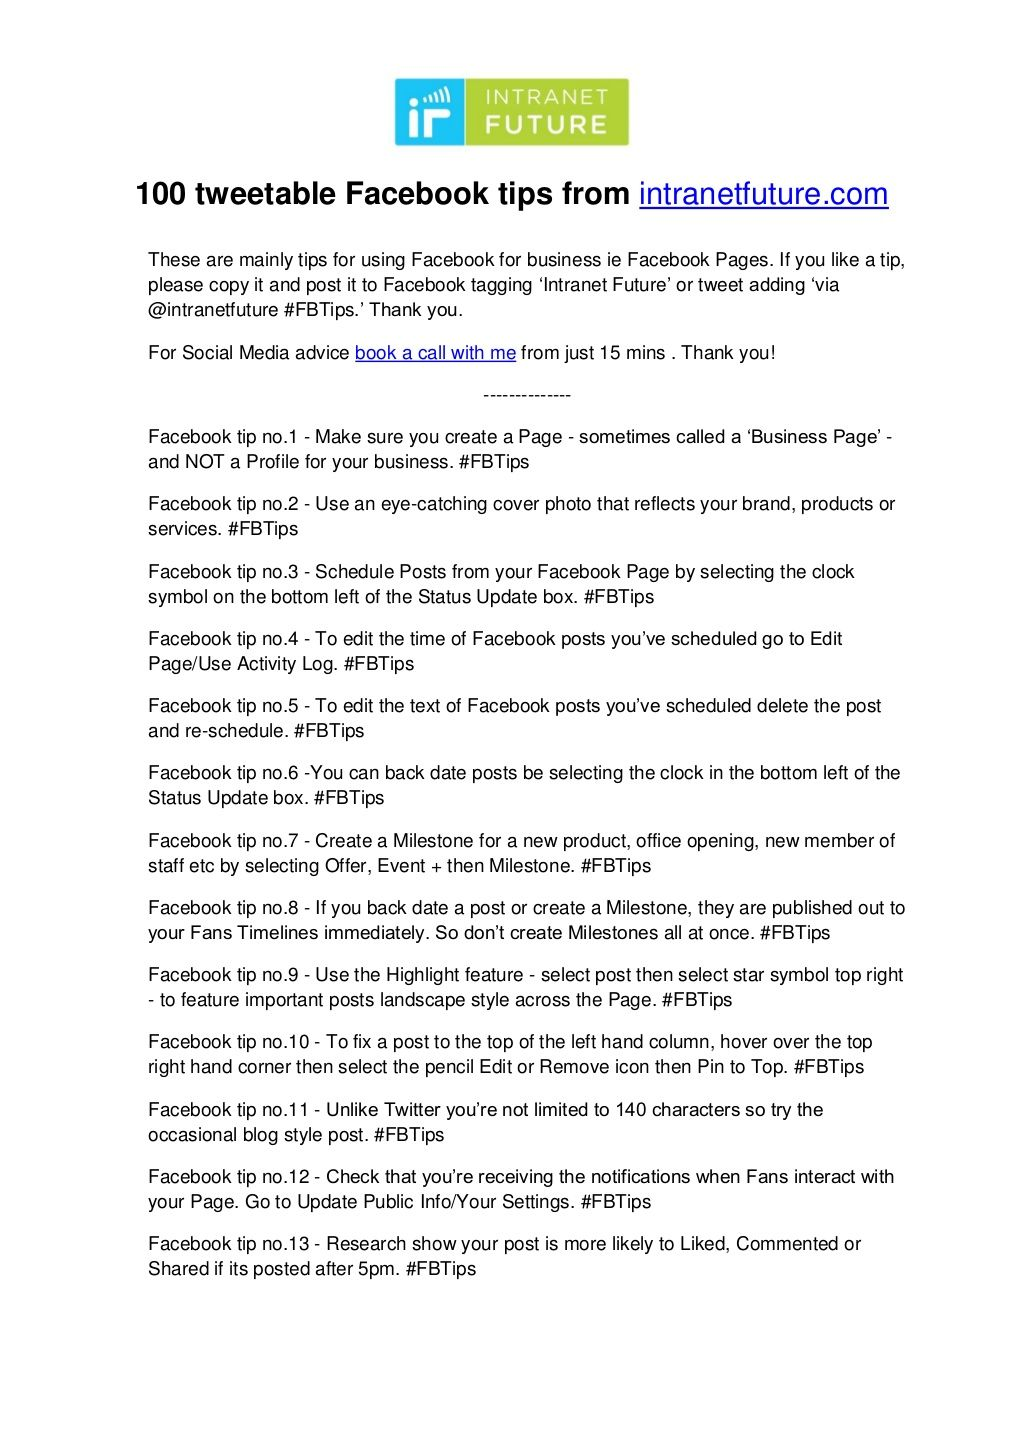 100 Facebook Tips By Intranet Future Via Slideshare For More Tips